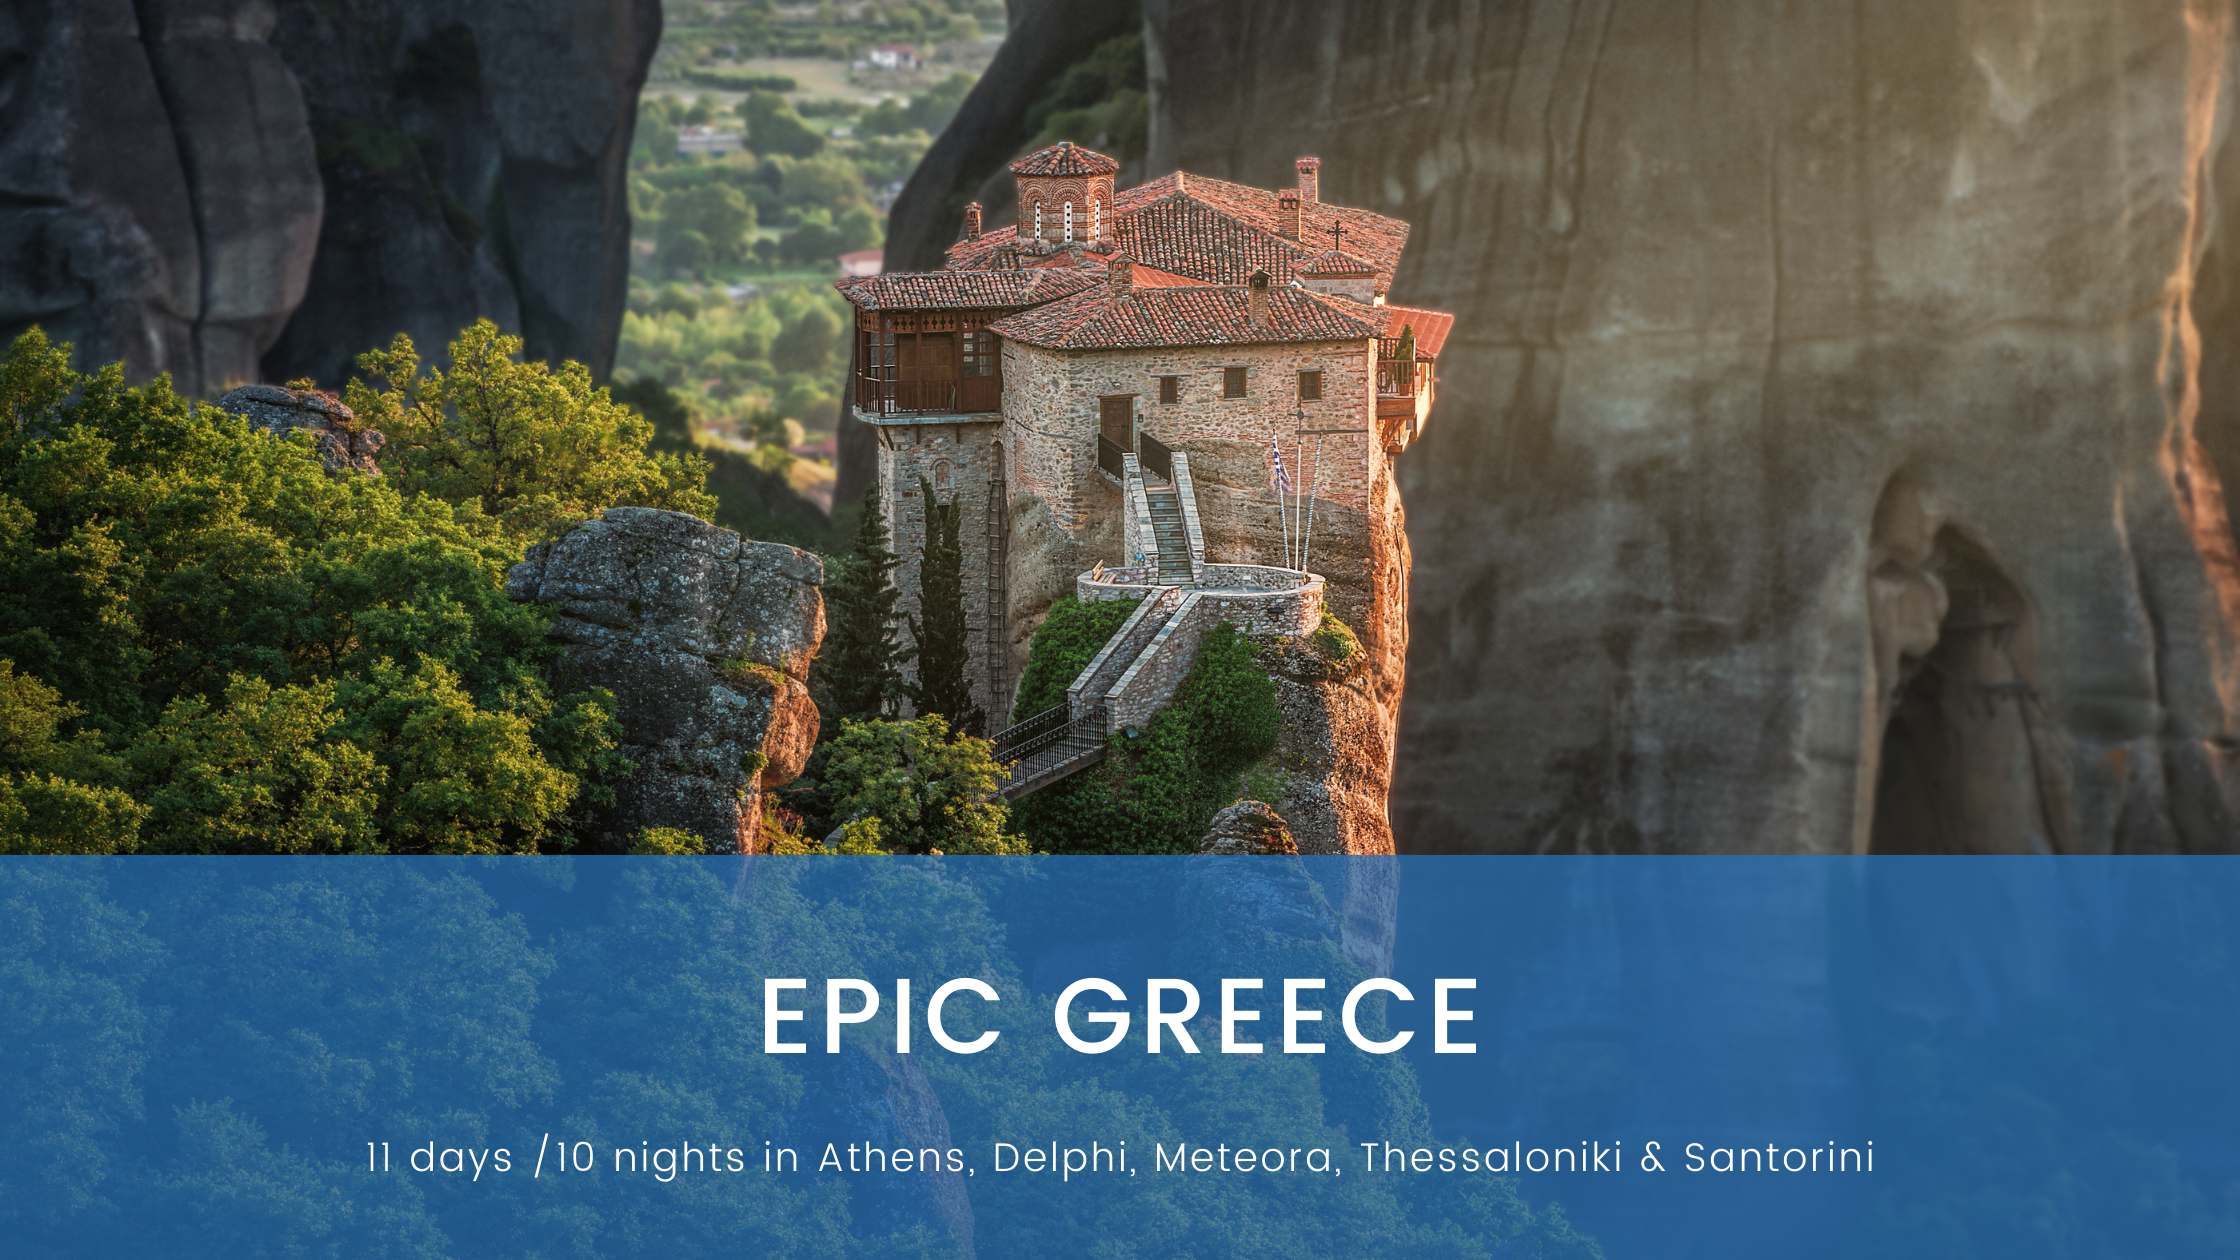 Epic Greece